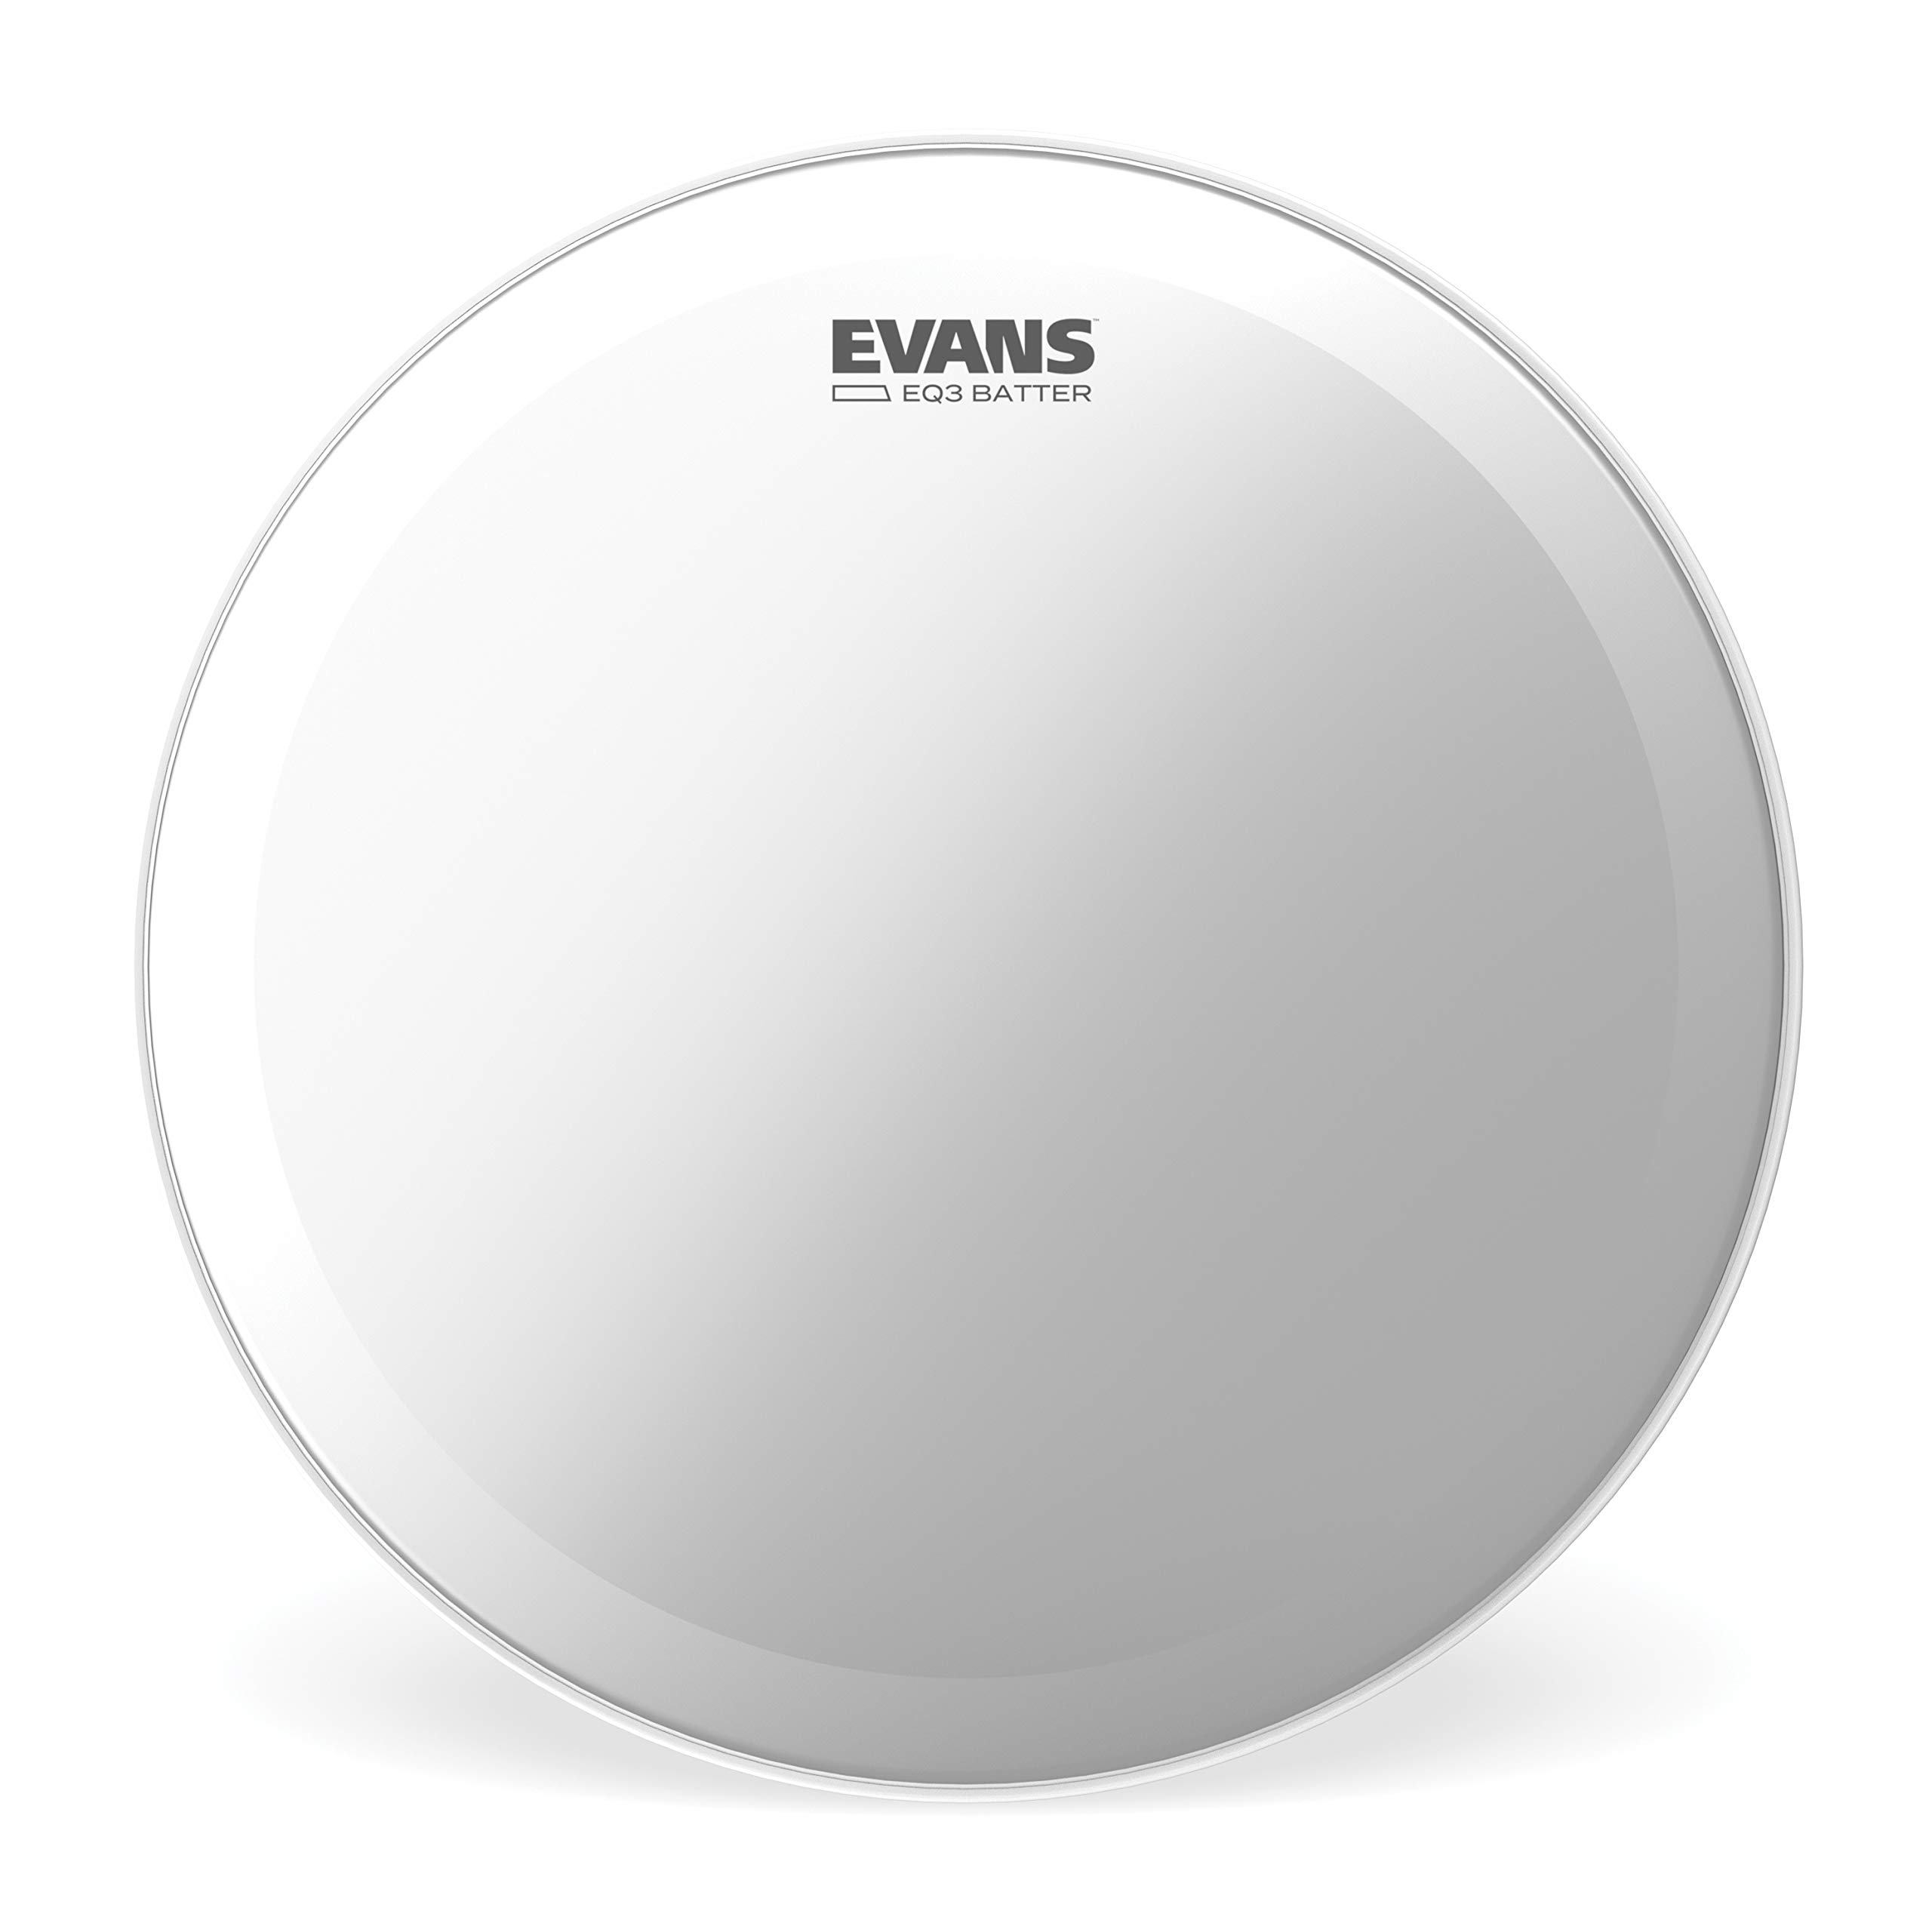 Evans EQ3 Frosted Bass Drum Head, 22 Inch by Evans